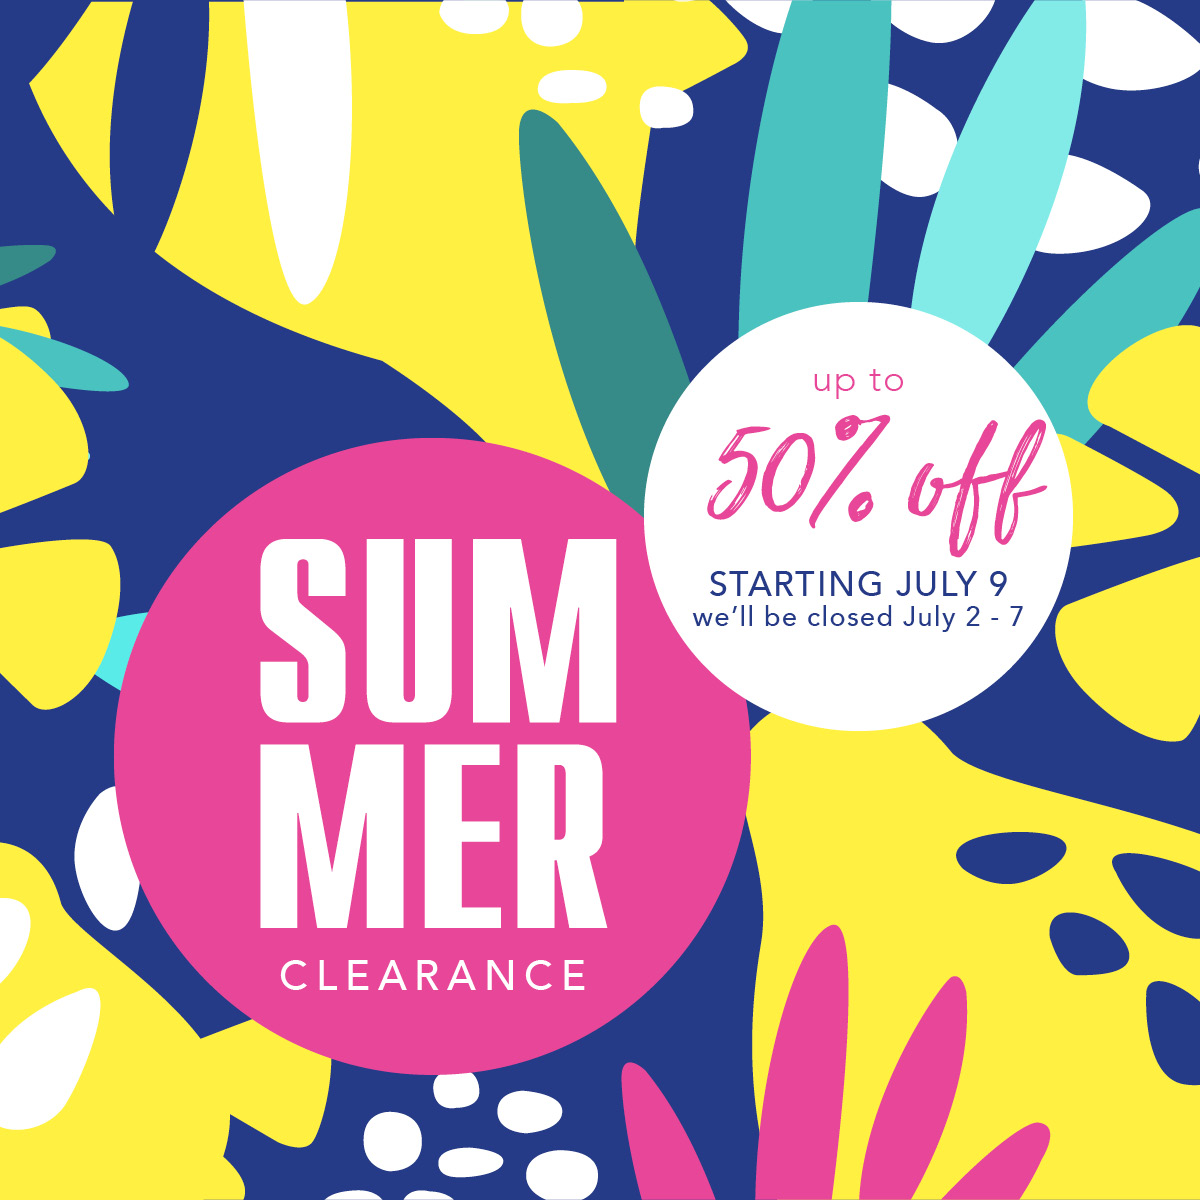 CWC_SummerClearance_Square.jpg